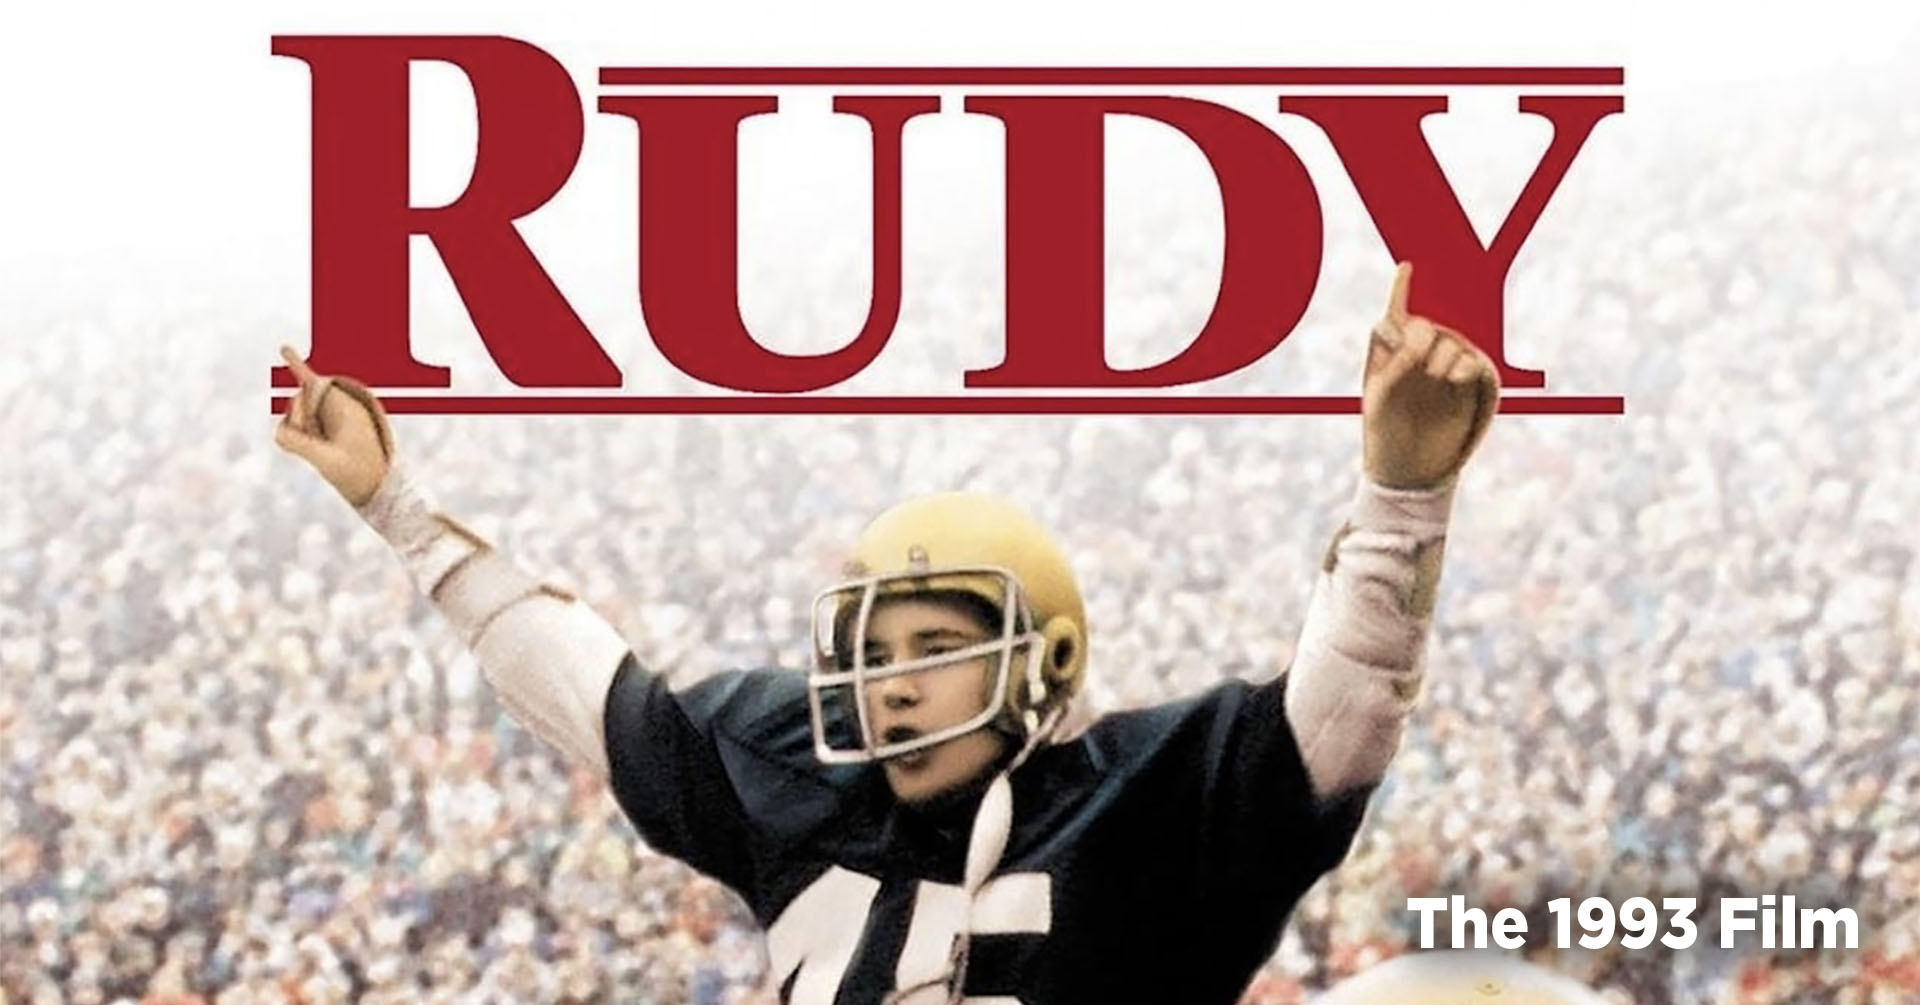 Rudy movie FB event & twitter pic